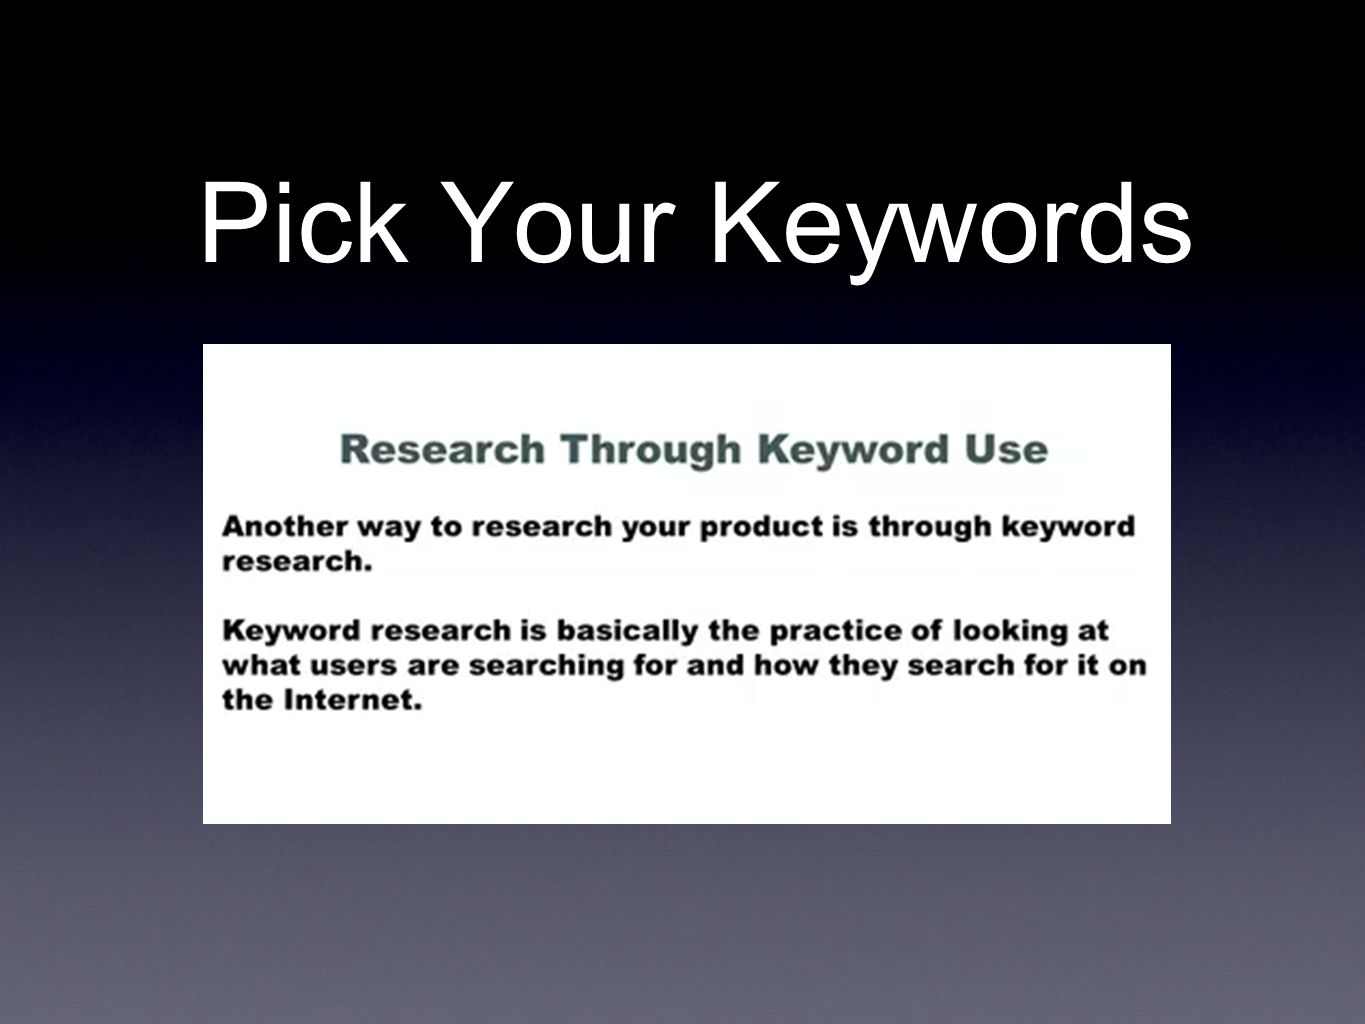 Pick Your Keywords